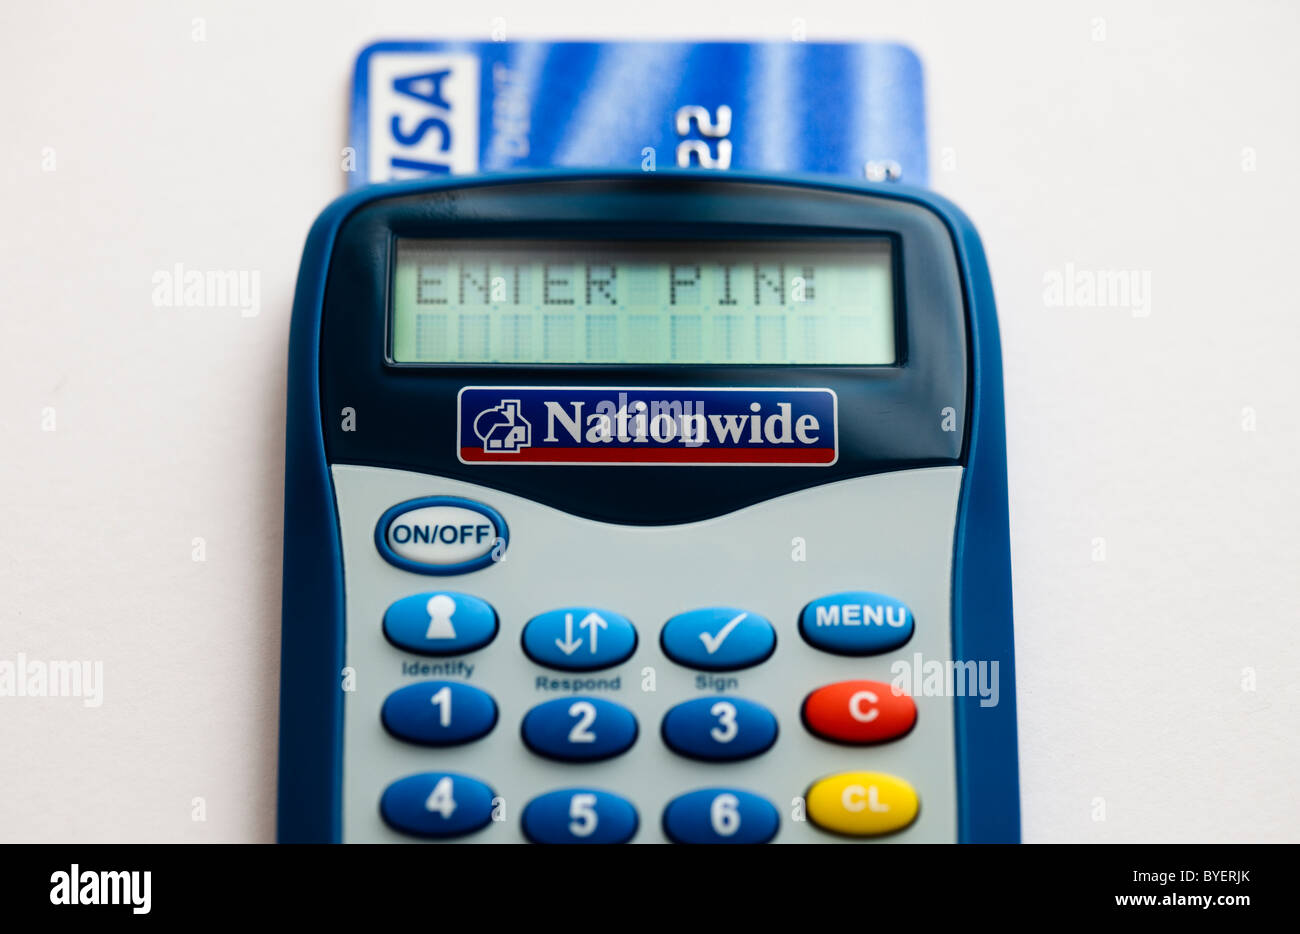 Nationwide Building Society Security